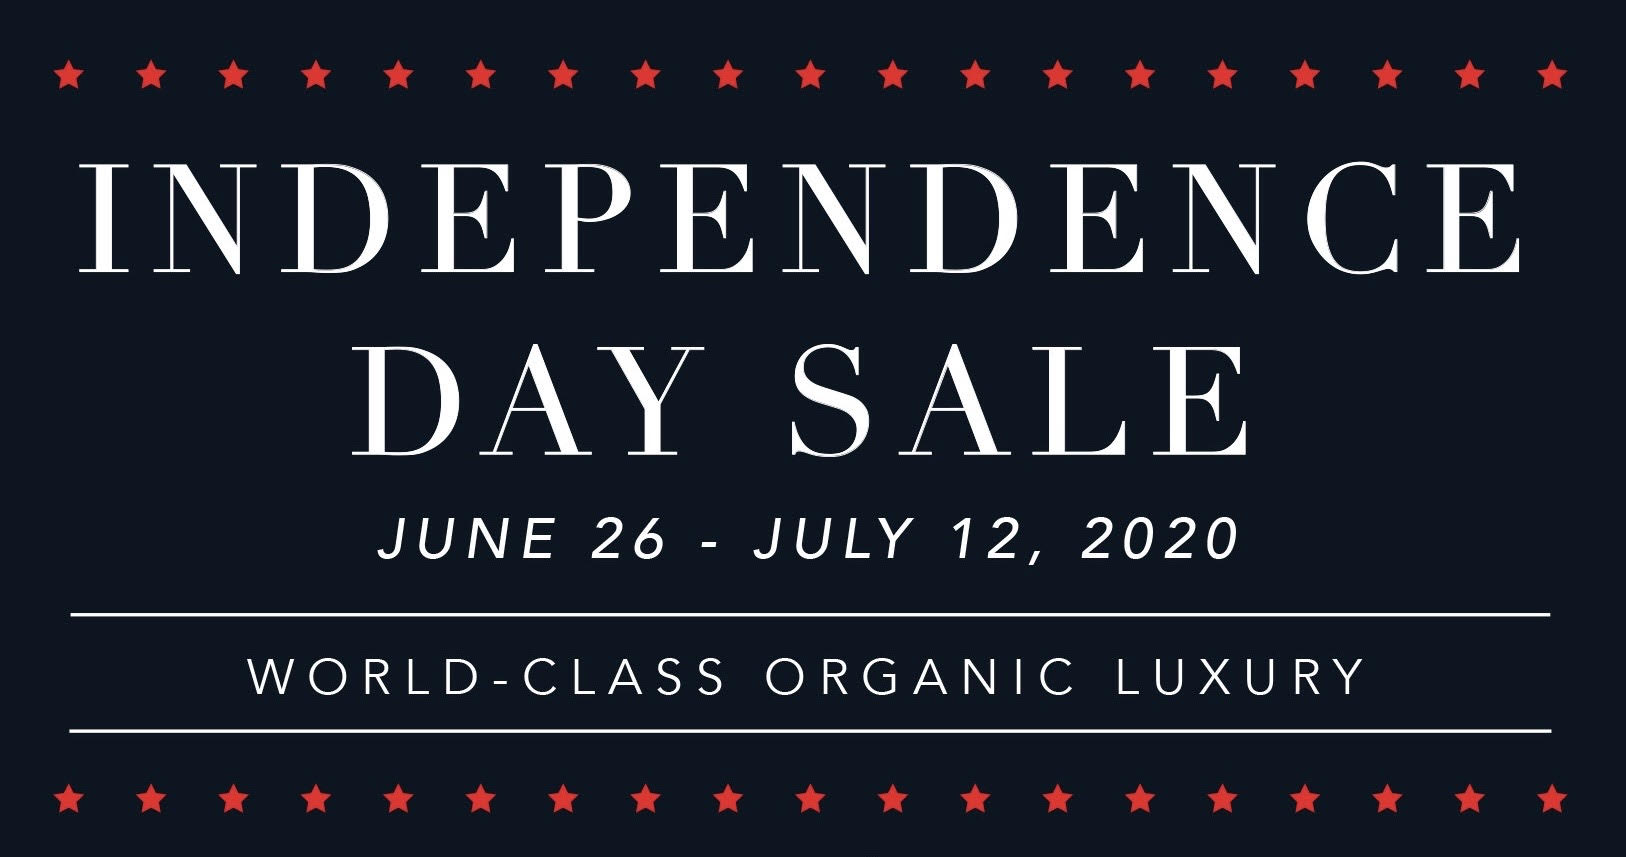 independence day sale 2020 dnm